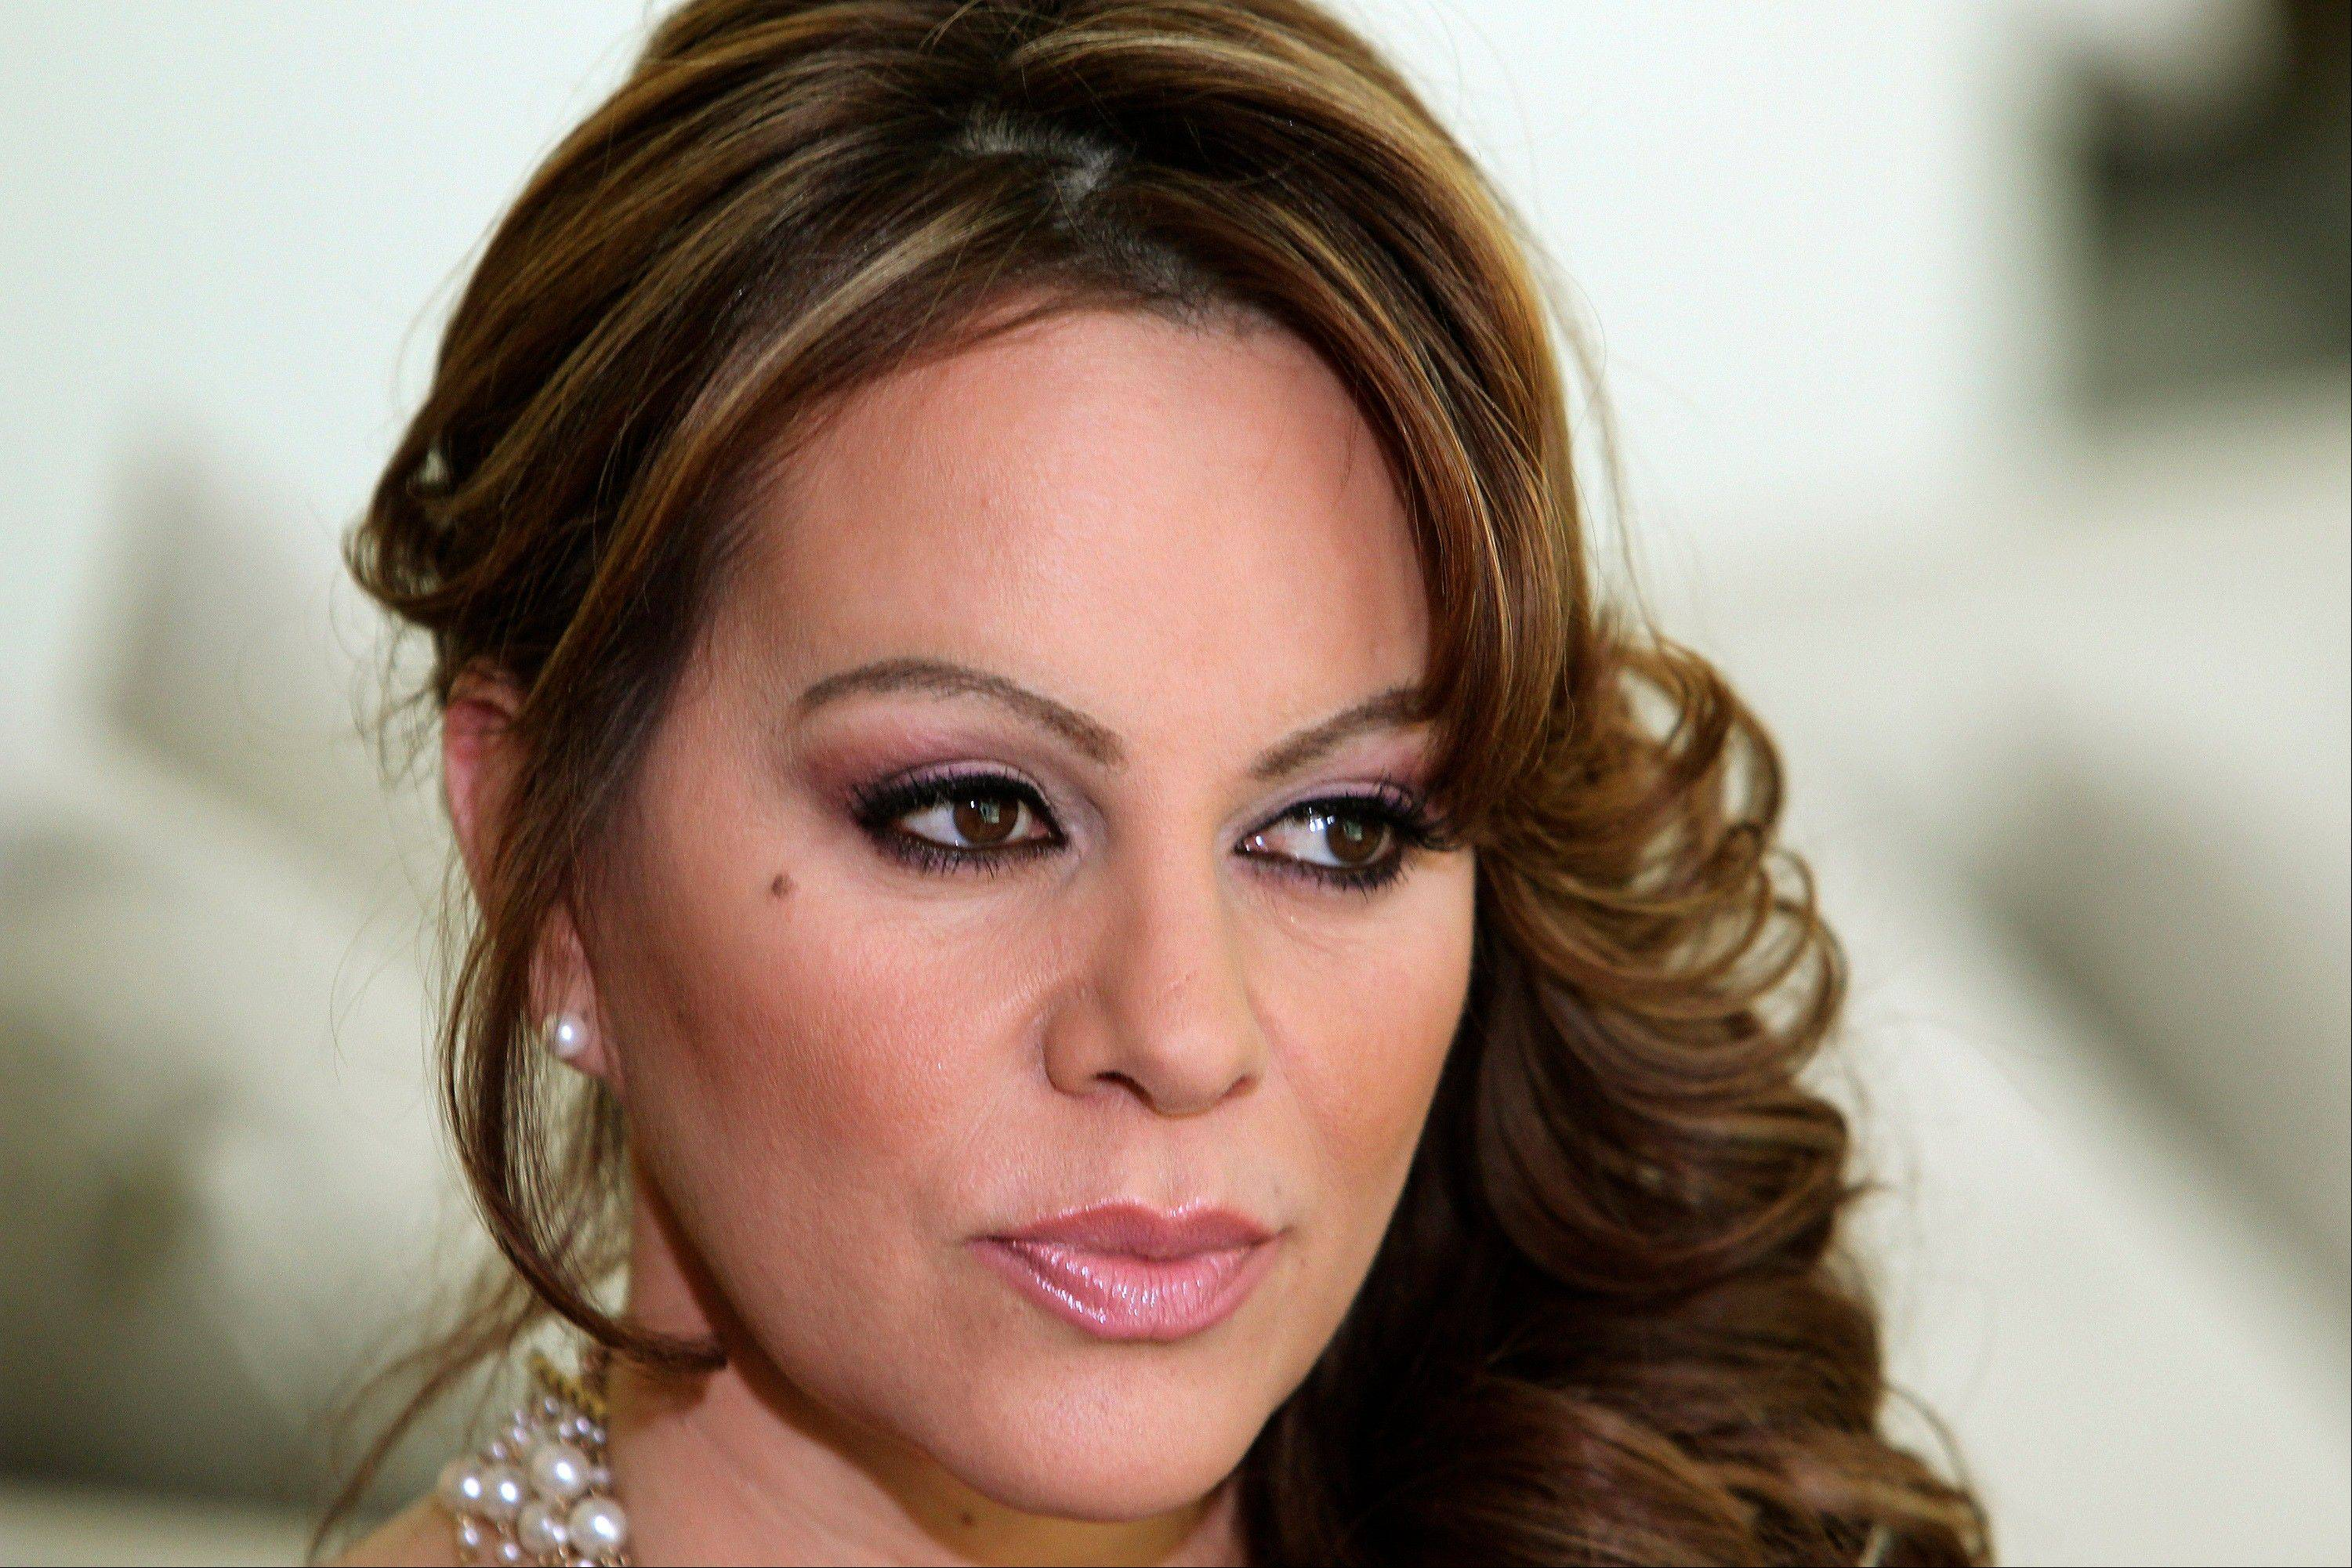 Mexican-American singer and reality TV star Jenni Rivera